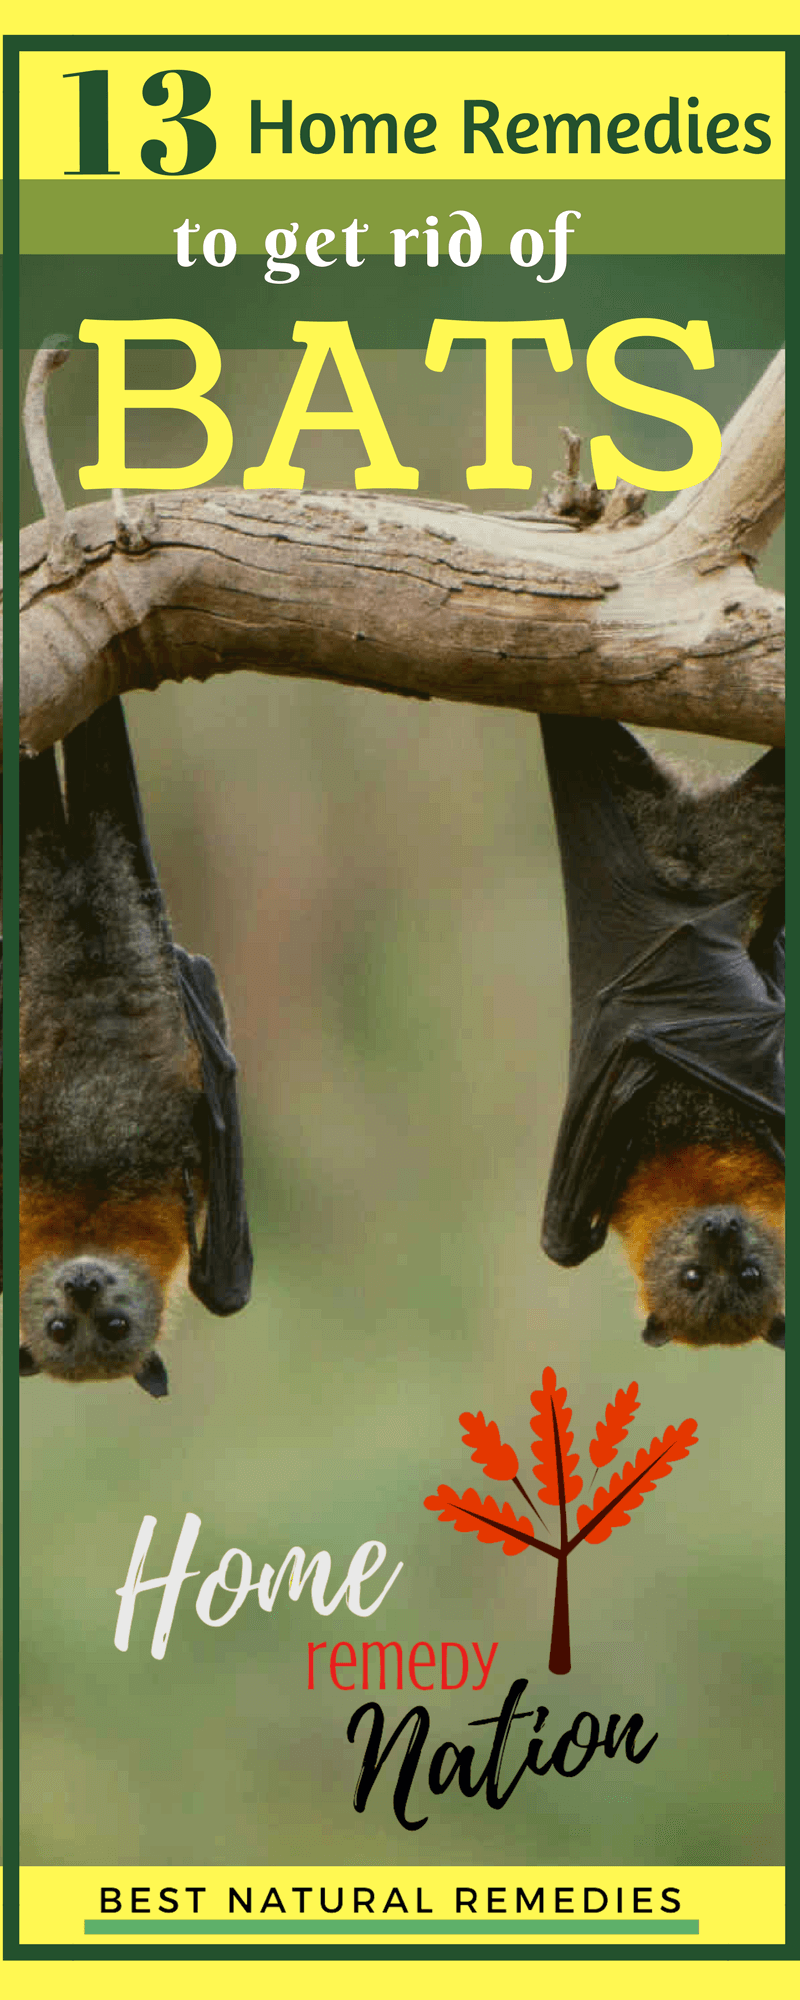 How to Get Rid of Bats. If bats have taken up residence in